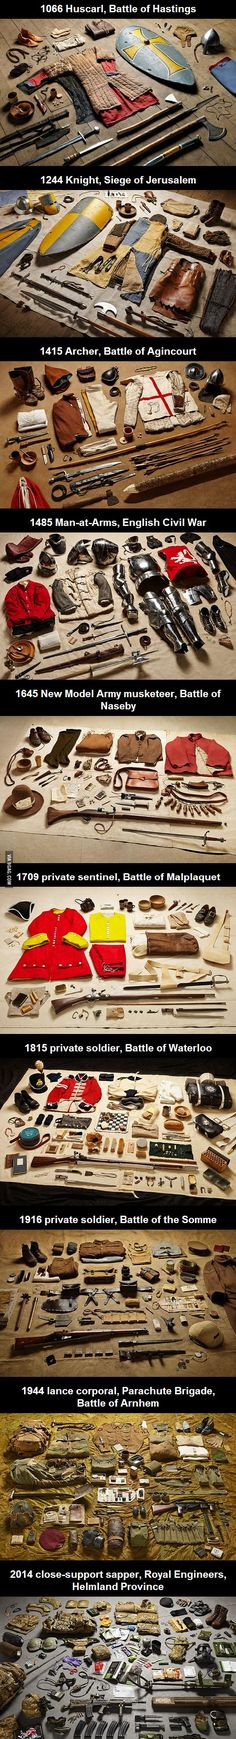 Military kit through the ages: from the Battle of Hastings to Helmand. 1709 was a fabulous year, but the rest was pretty cool.